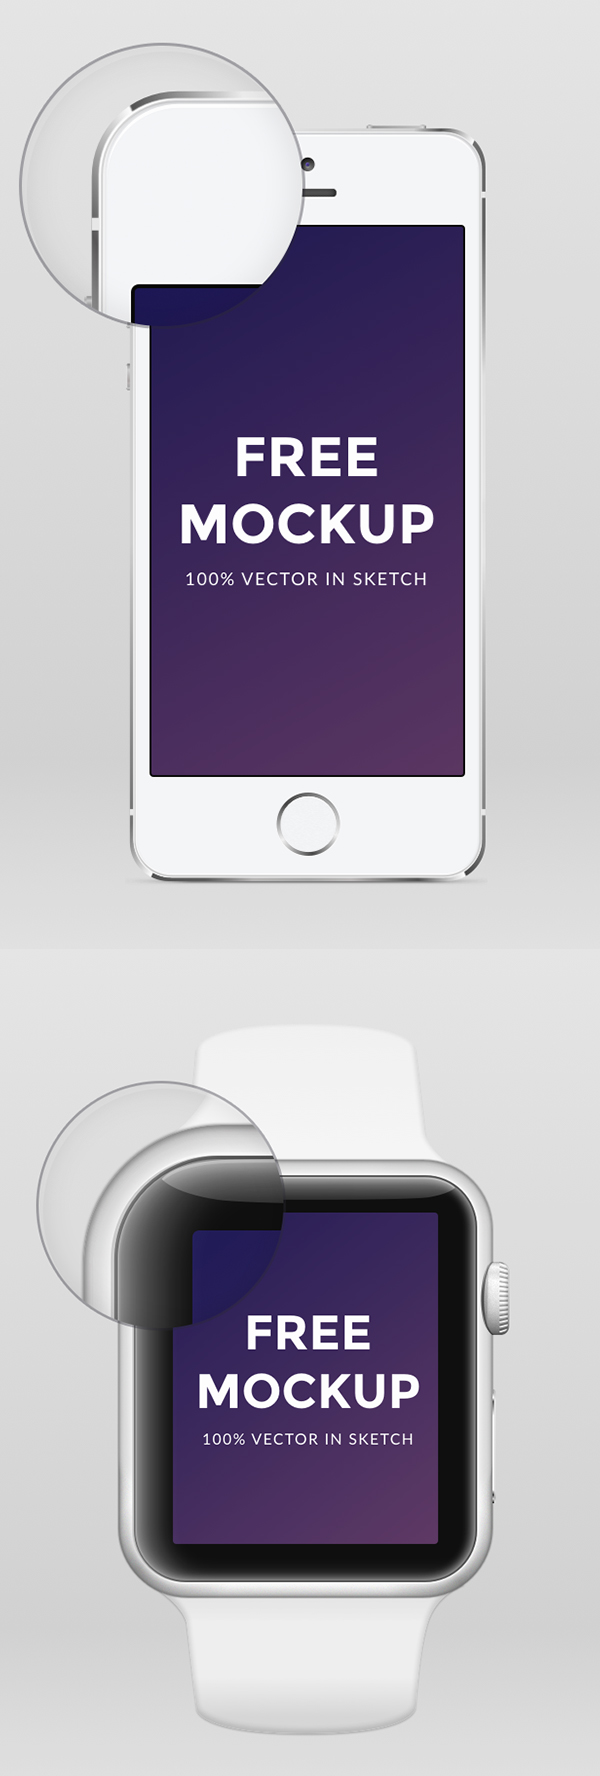 Free Apple Watch iPhone 6 & iPhone 5 .sketch Mockup